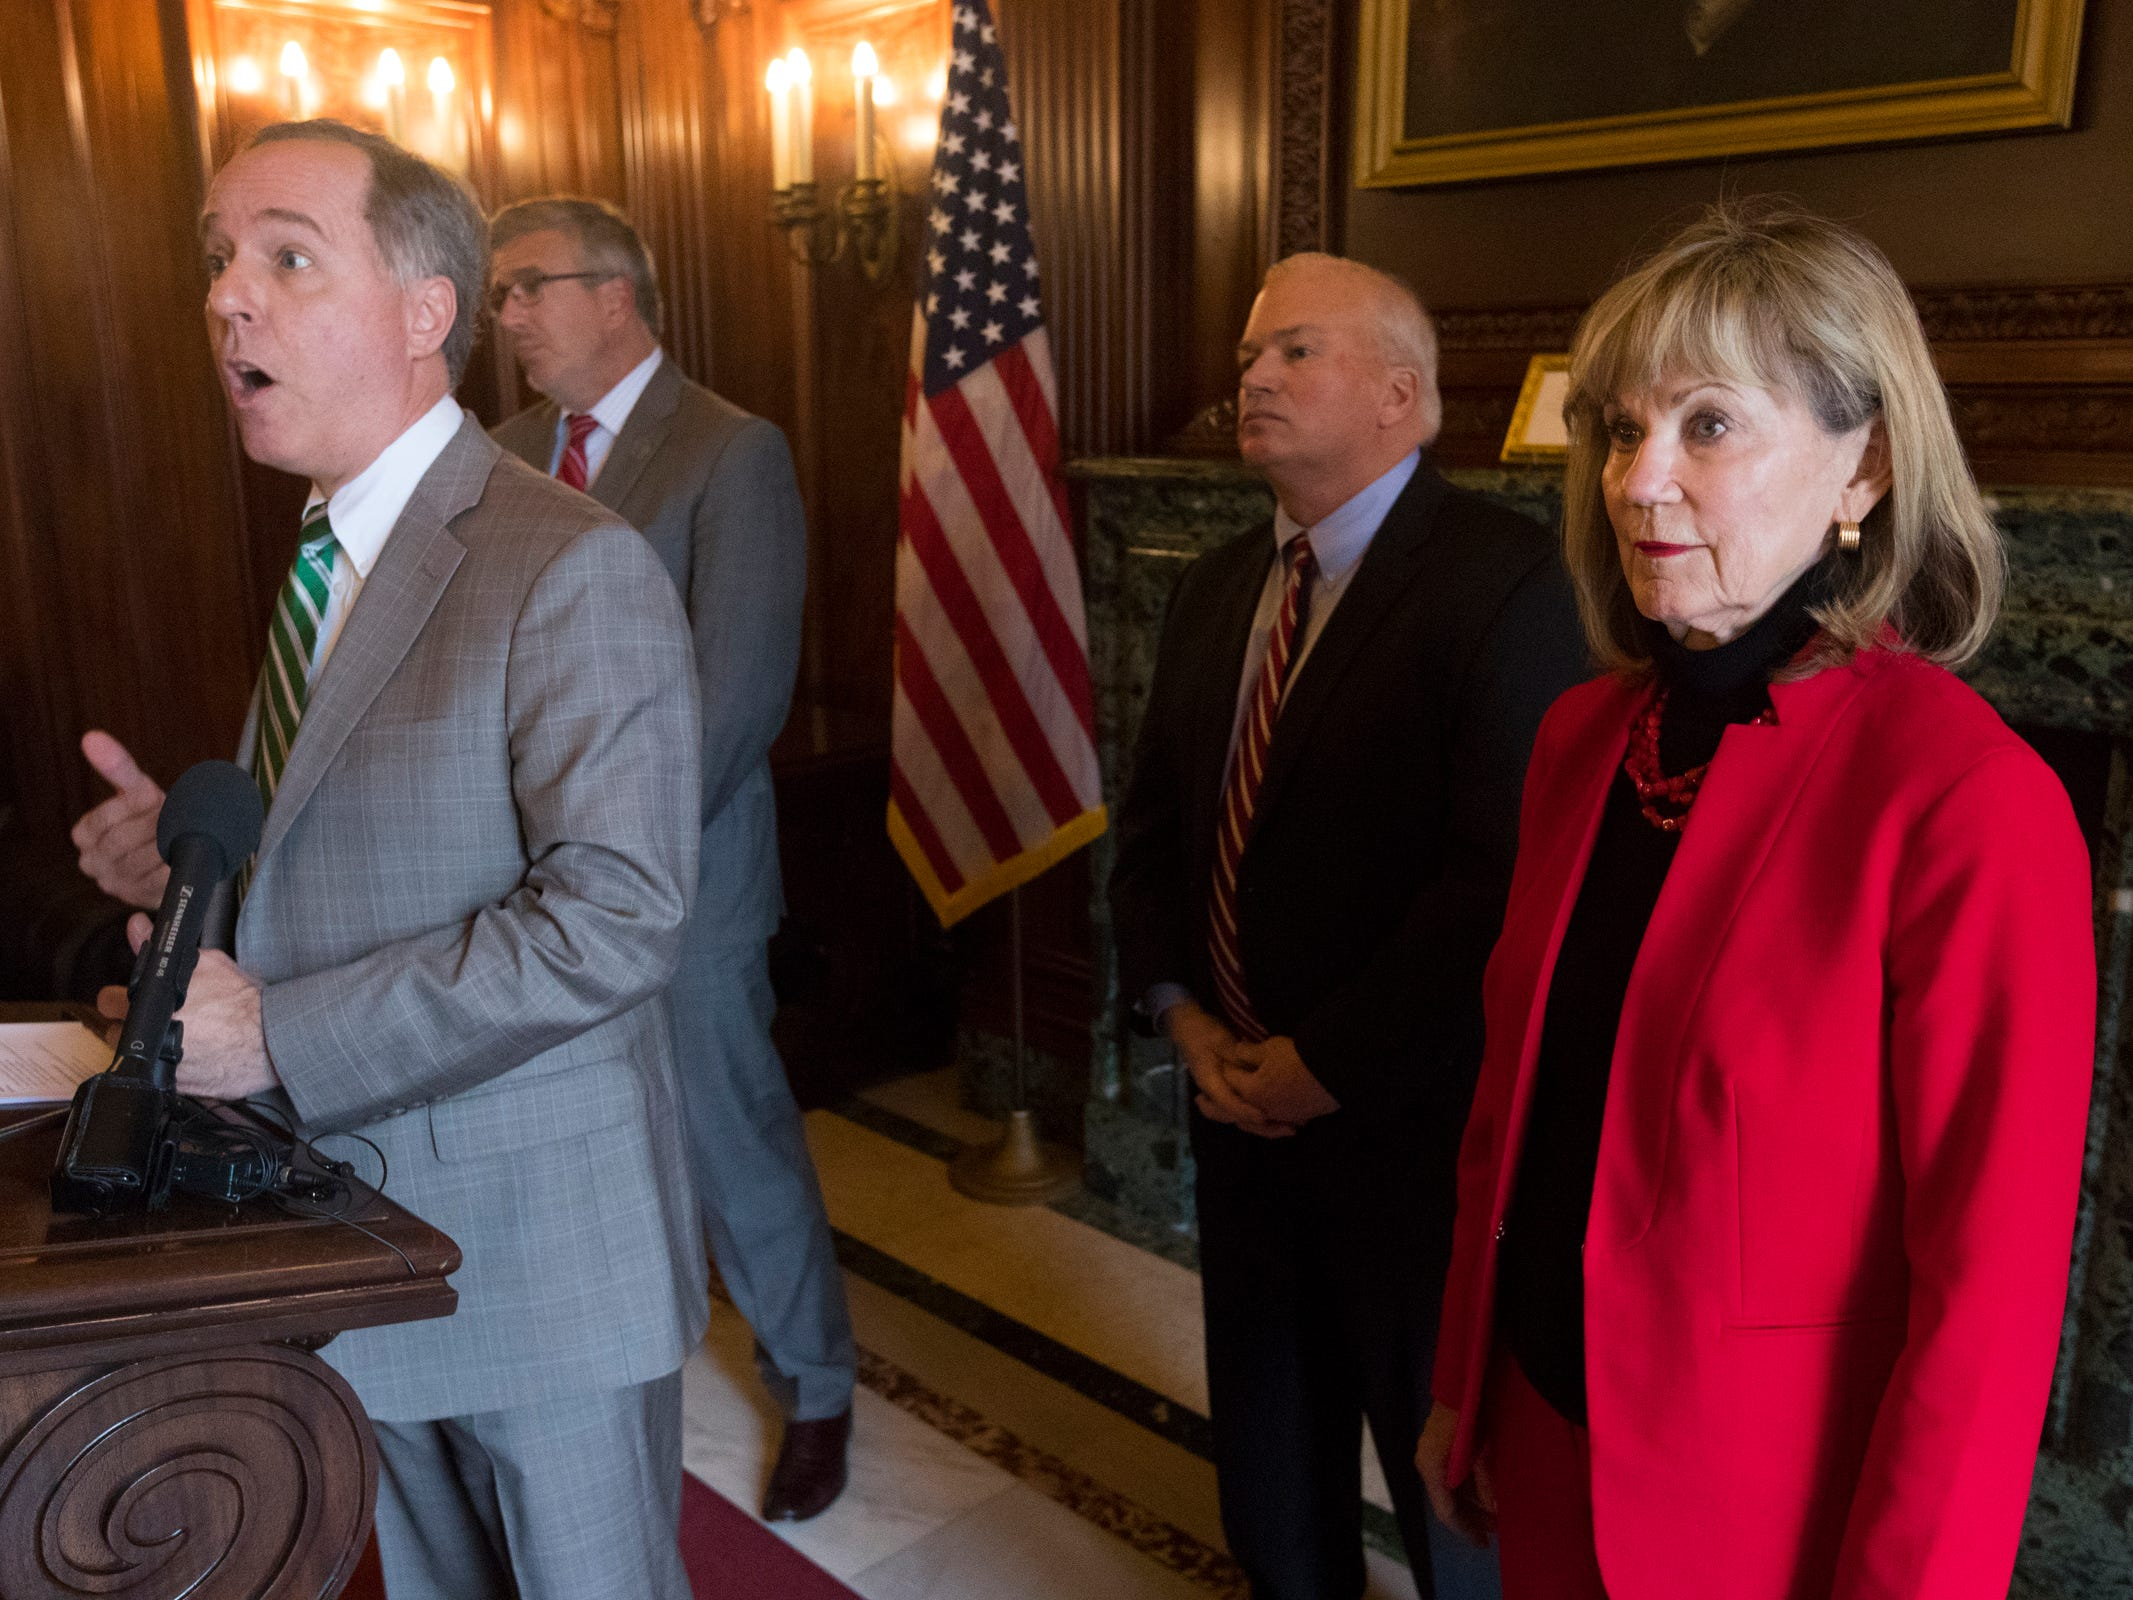 Assembly Speaker Robin Vos speaks during a news conference Monday, Dec. 3, 2018, at the Capitol in Madison. Joining him were (from left) state Rep. John Nygren, Senate Majority Leader Scott Fitzgerald and state Sen. Alberta Darling.